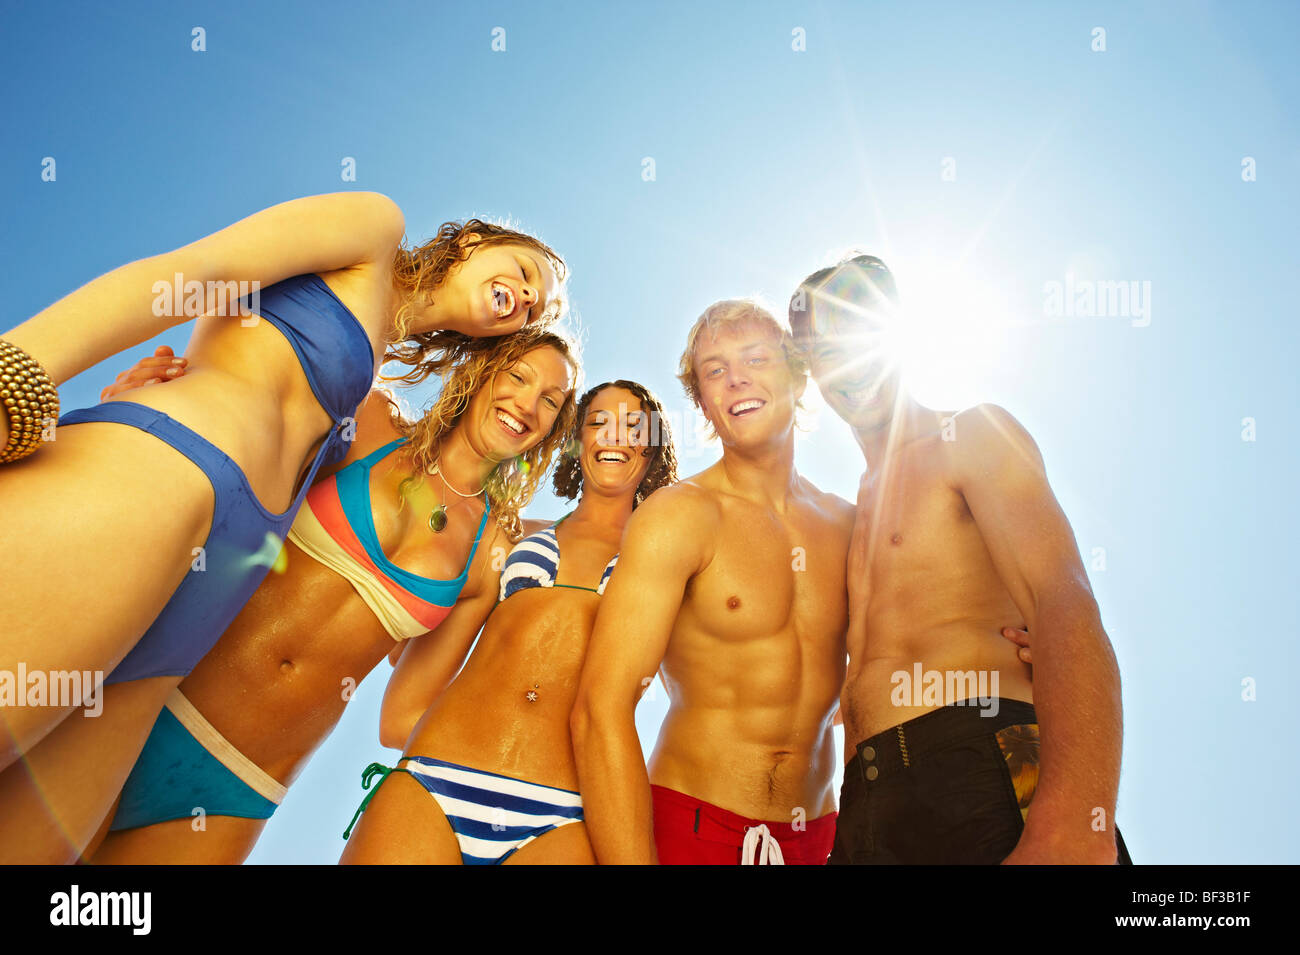 Group of young people in swim wear - Stock Image